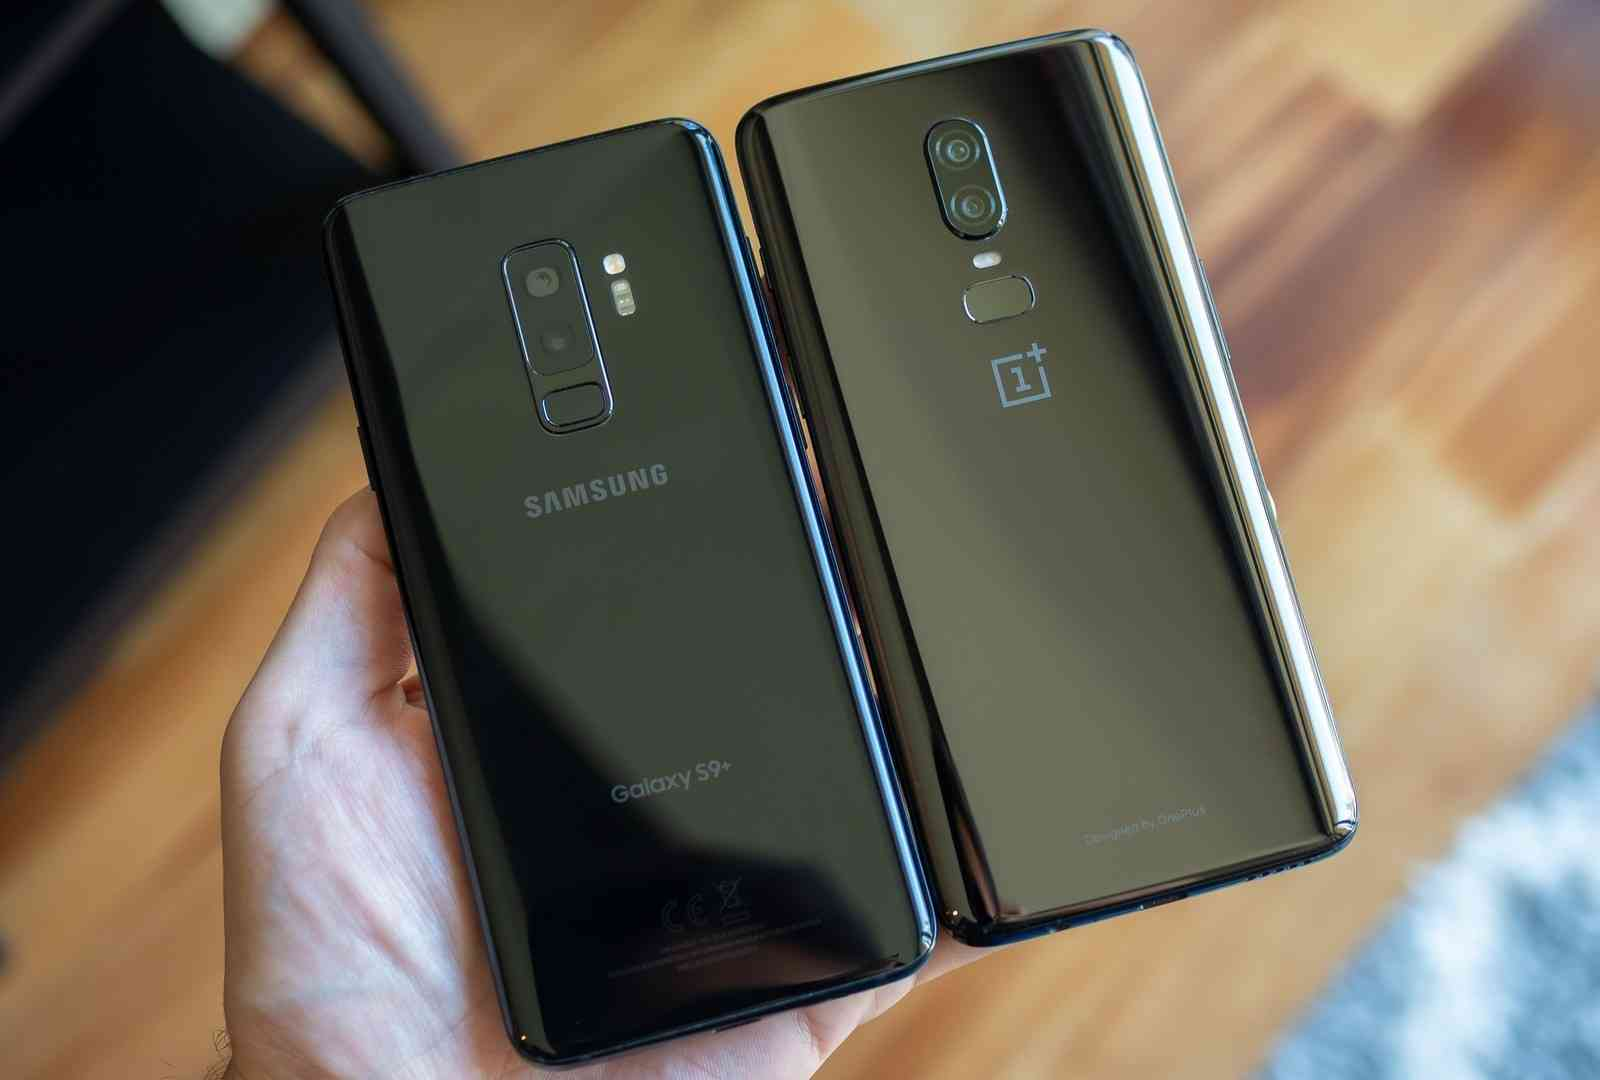 identical glass body designs on the Samsung Galaxy S9 Plus and the OnePlus 6 smart phone.